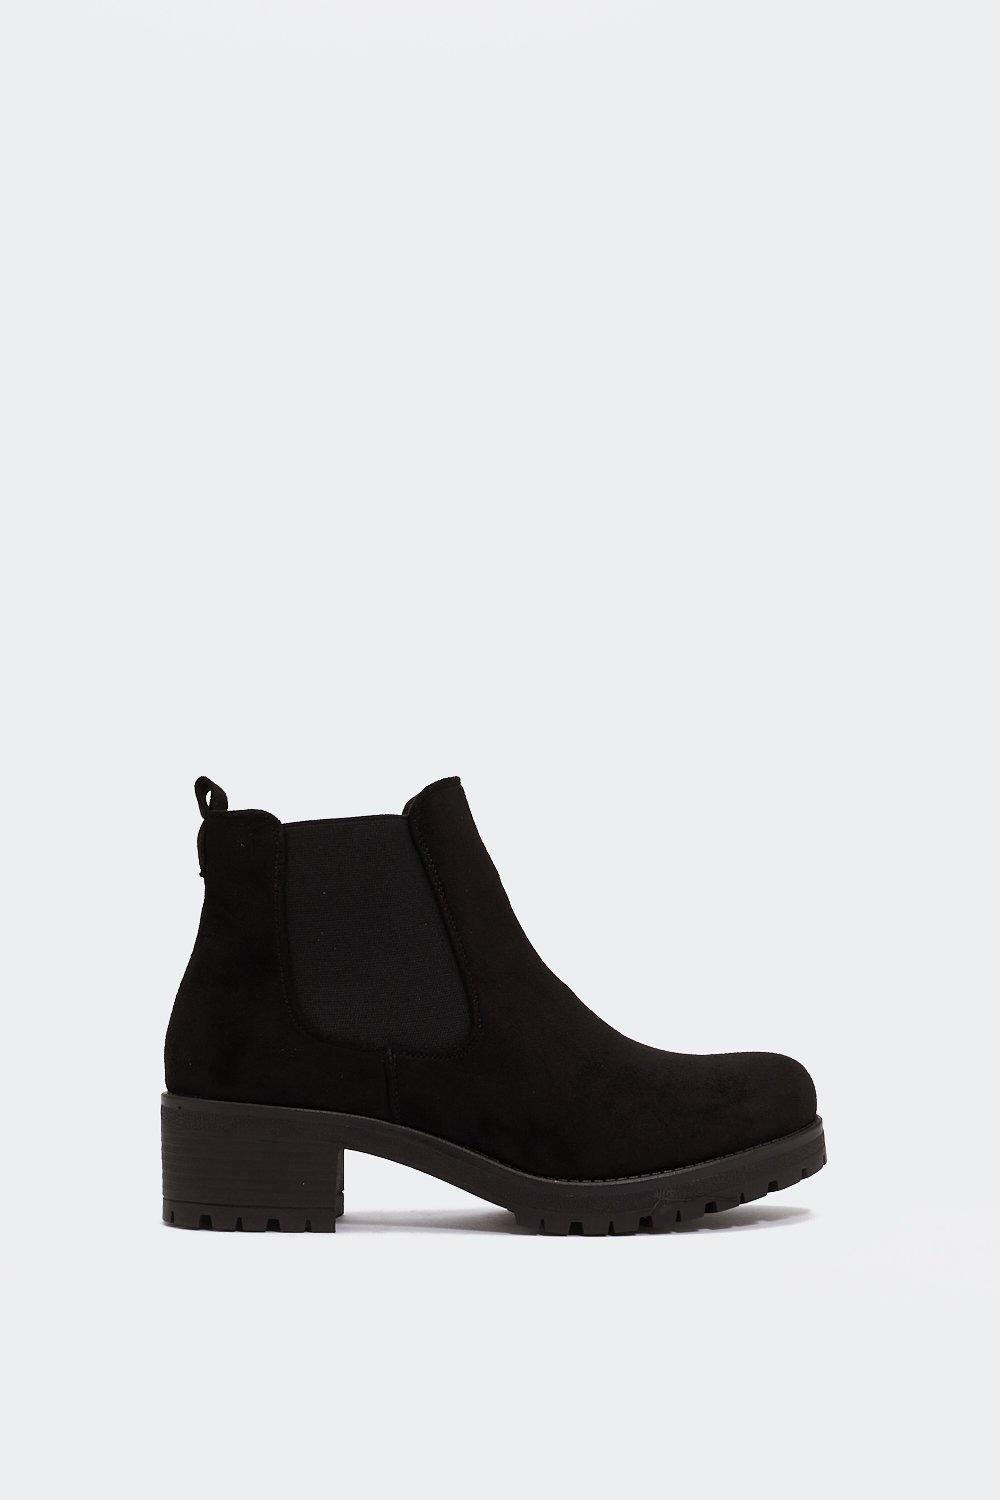 Suited And Booted Chelsea Boot by Nasty Gal